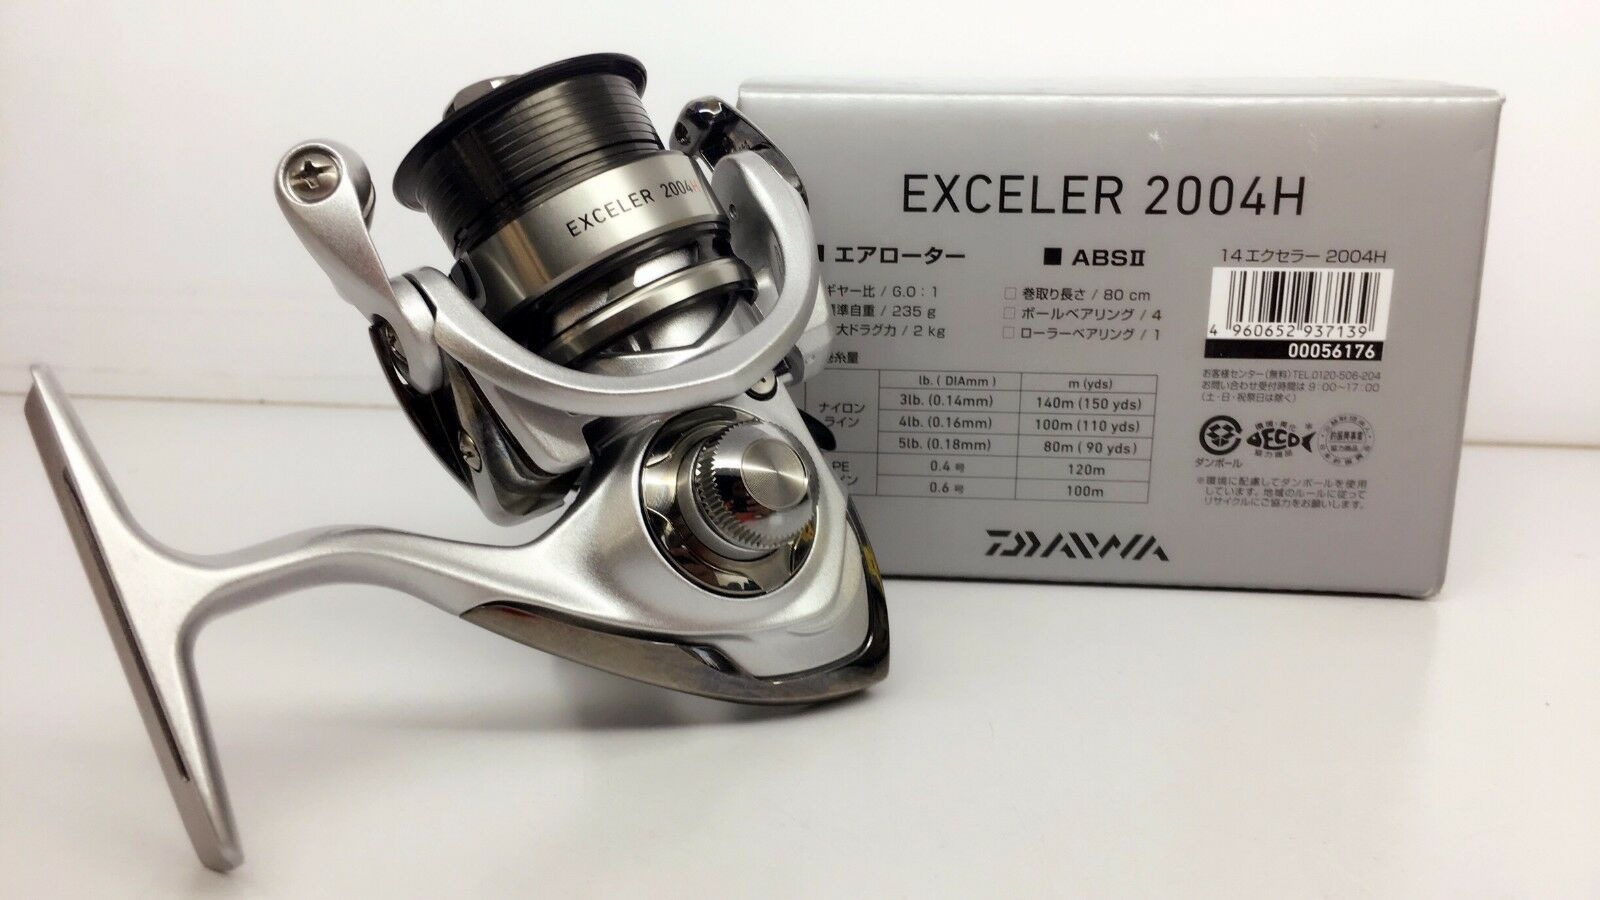 DAIWA Exceler 2004H Spinning Reel 2004 H Fedex Priority shipping 2days to Usa